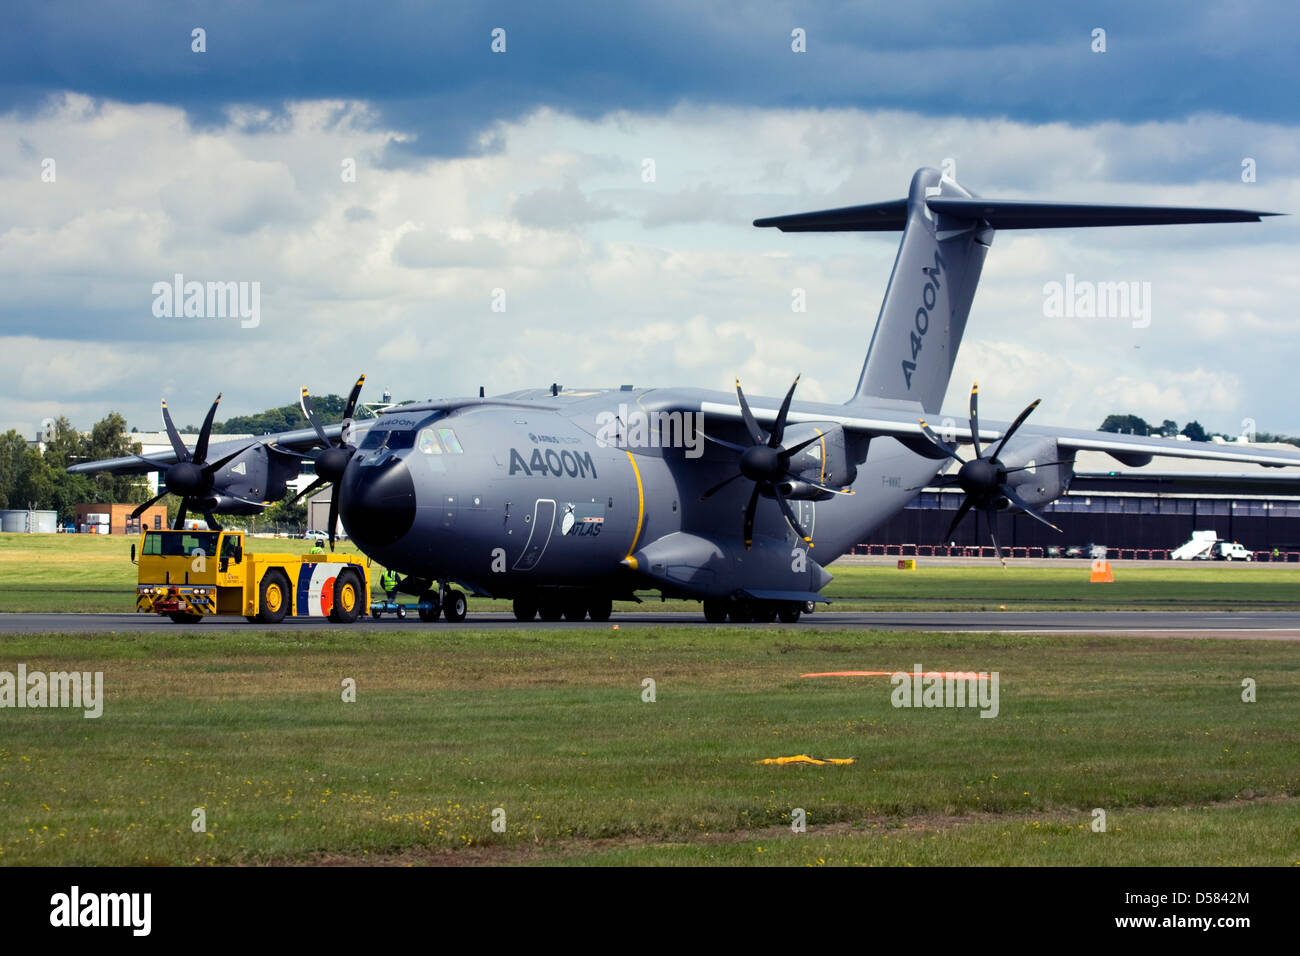 Airbus A400M Atlas military transport aircraft. - Stock Image